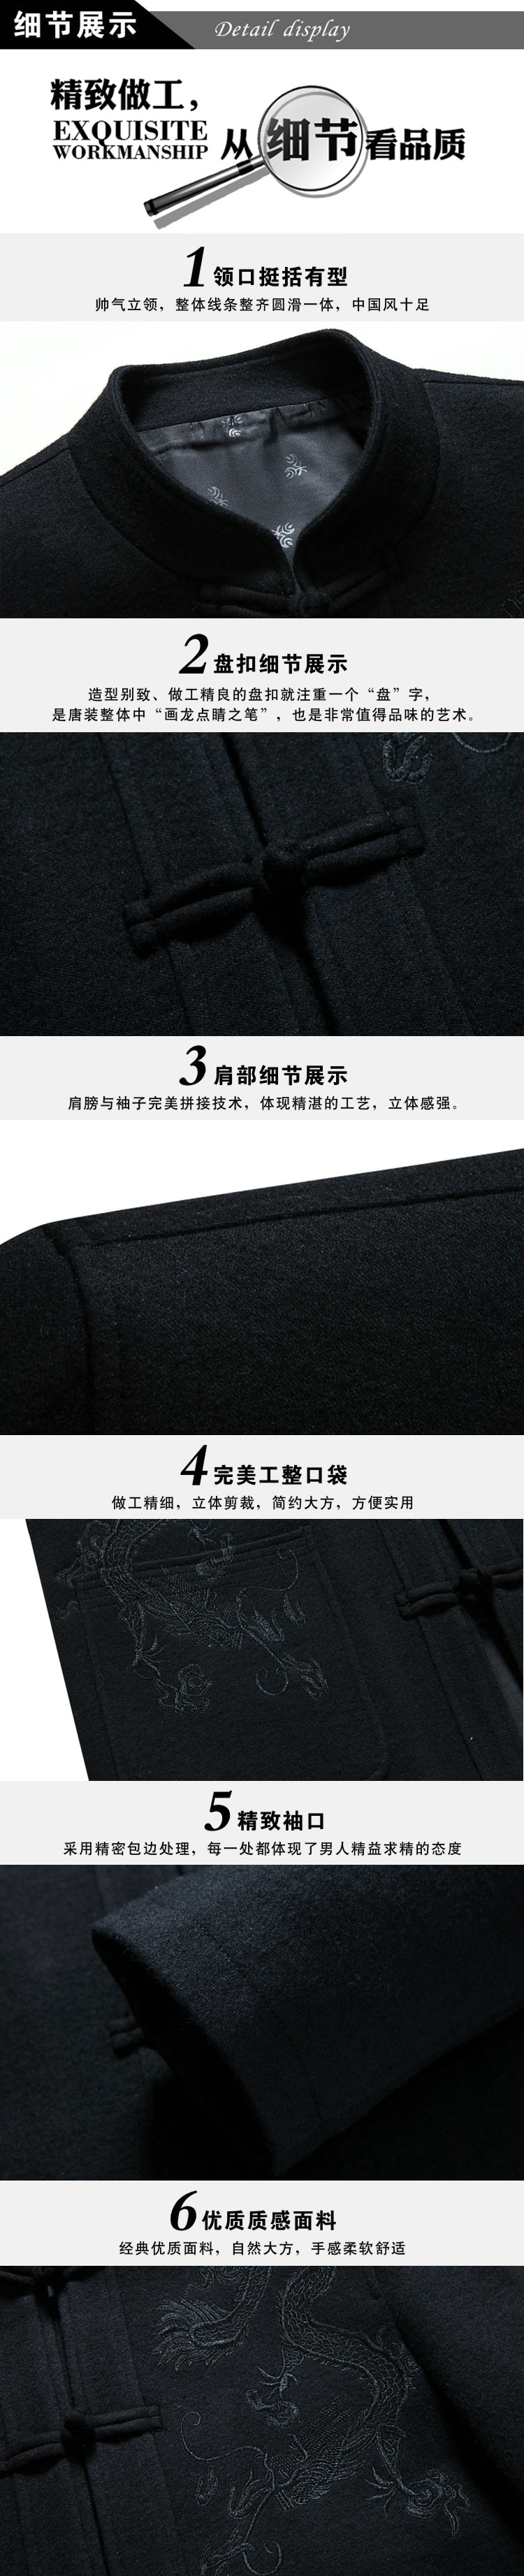 WAEOLSA Chinese Men Oriental Tunic Jackets Wool Blends Tangzhuang Coats Man Dragon Embroidery Tweed Suit Coat (1)